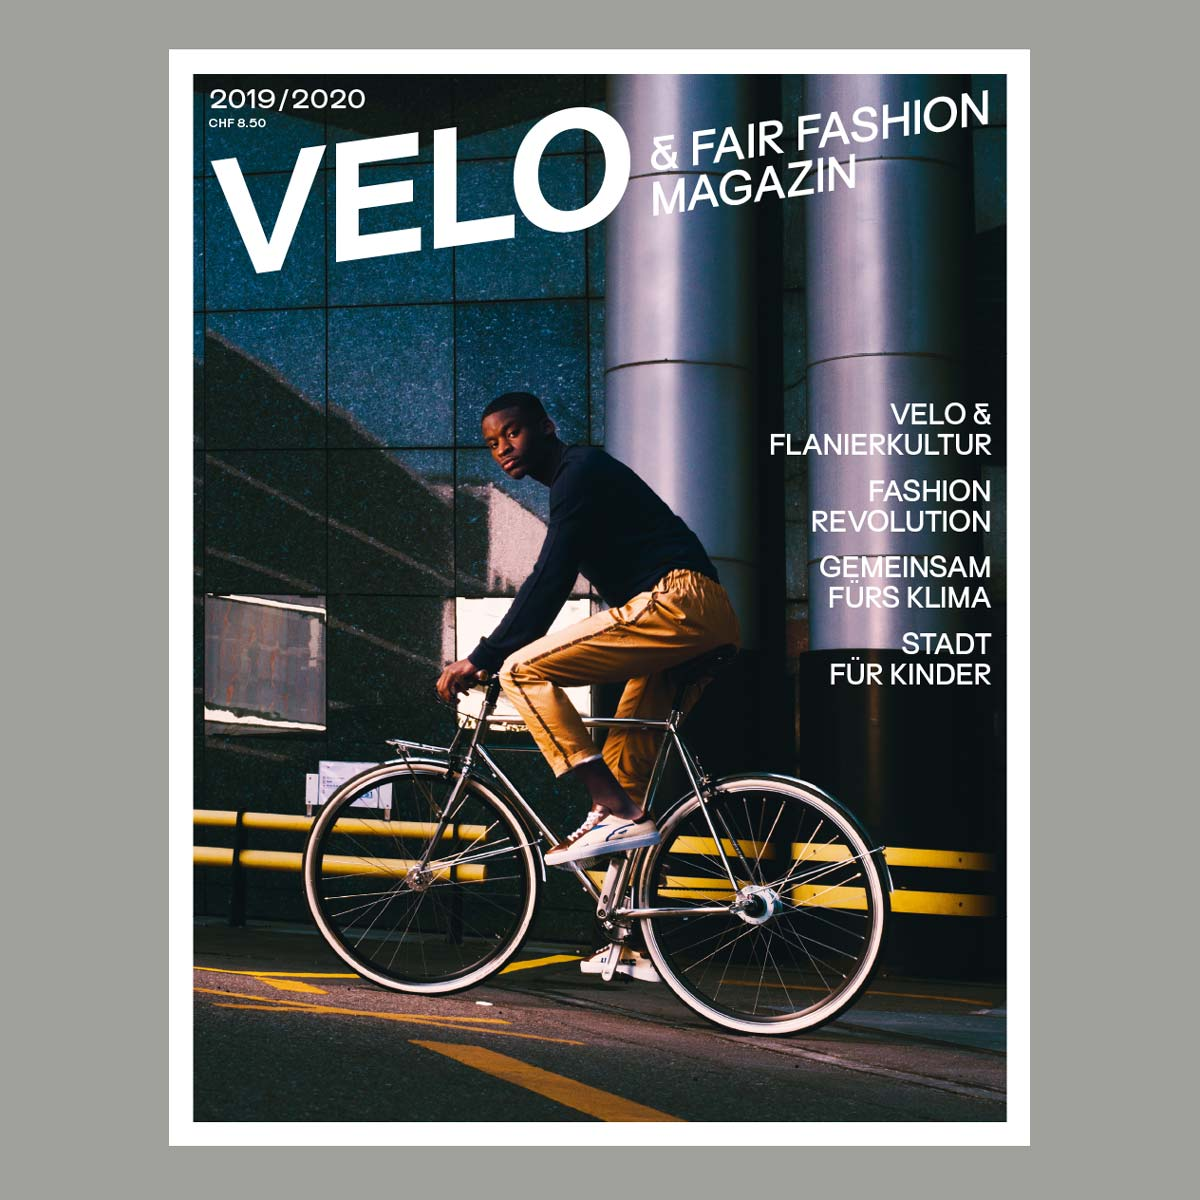 Velo Fashion Magazin 2019/20